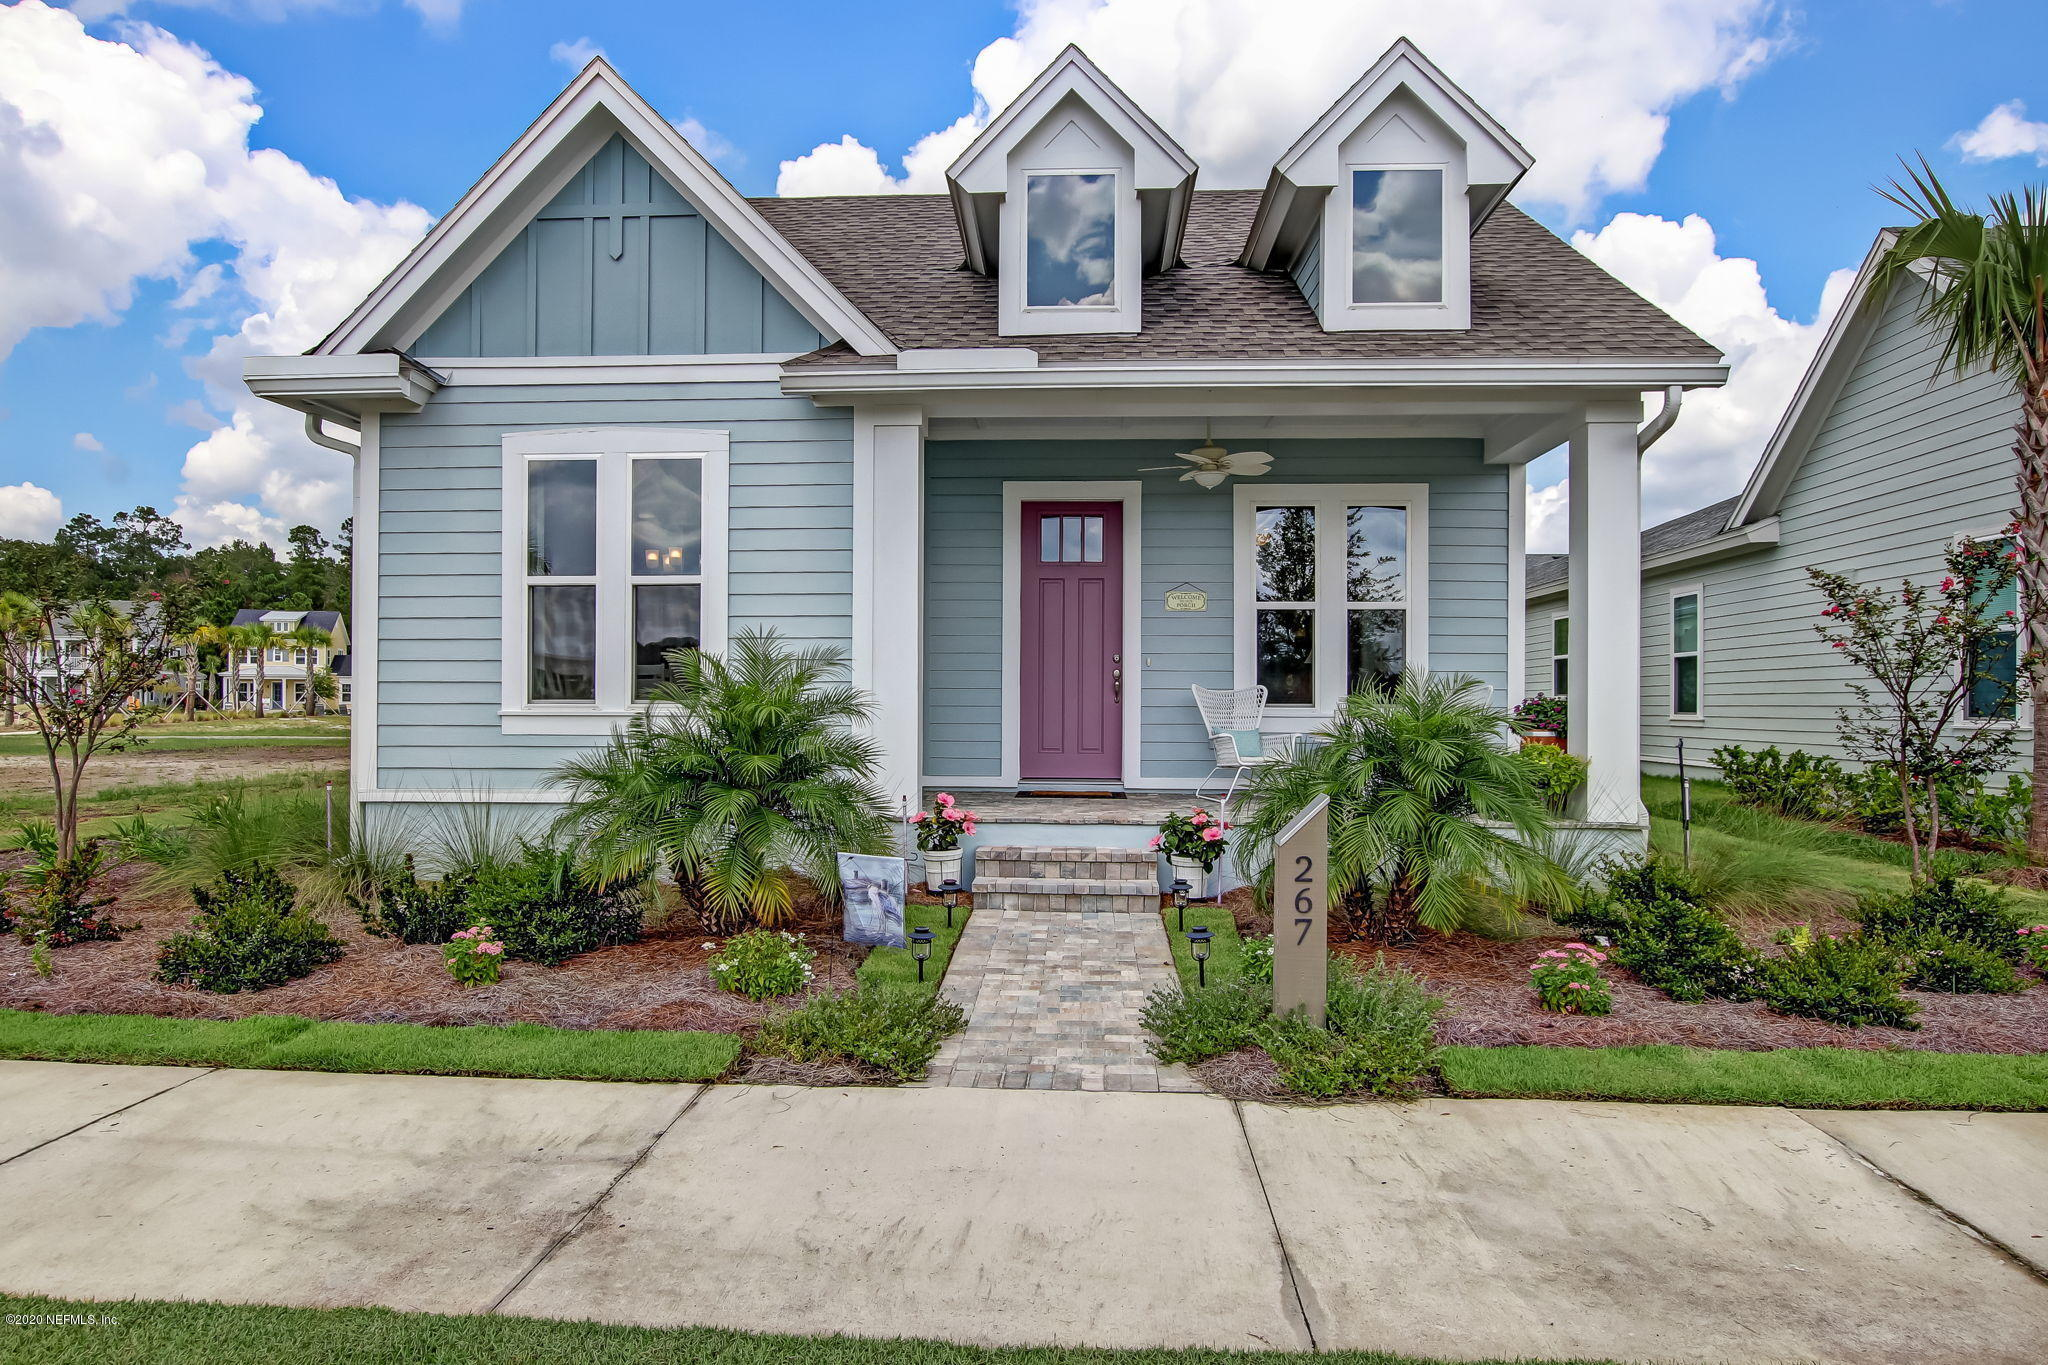 Details for 267 Daydream Ave, YULEE, FL 32097